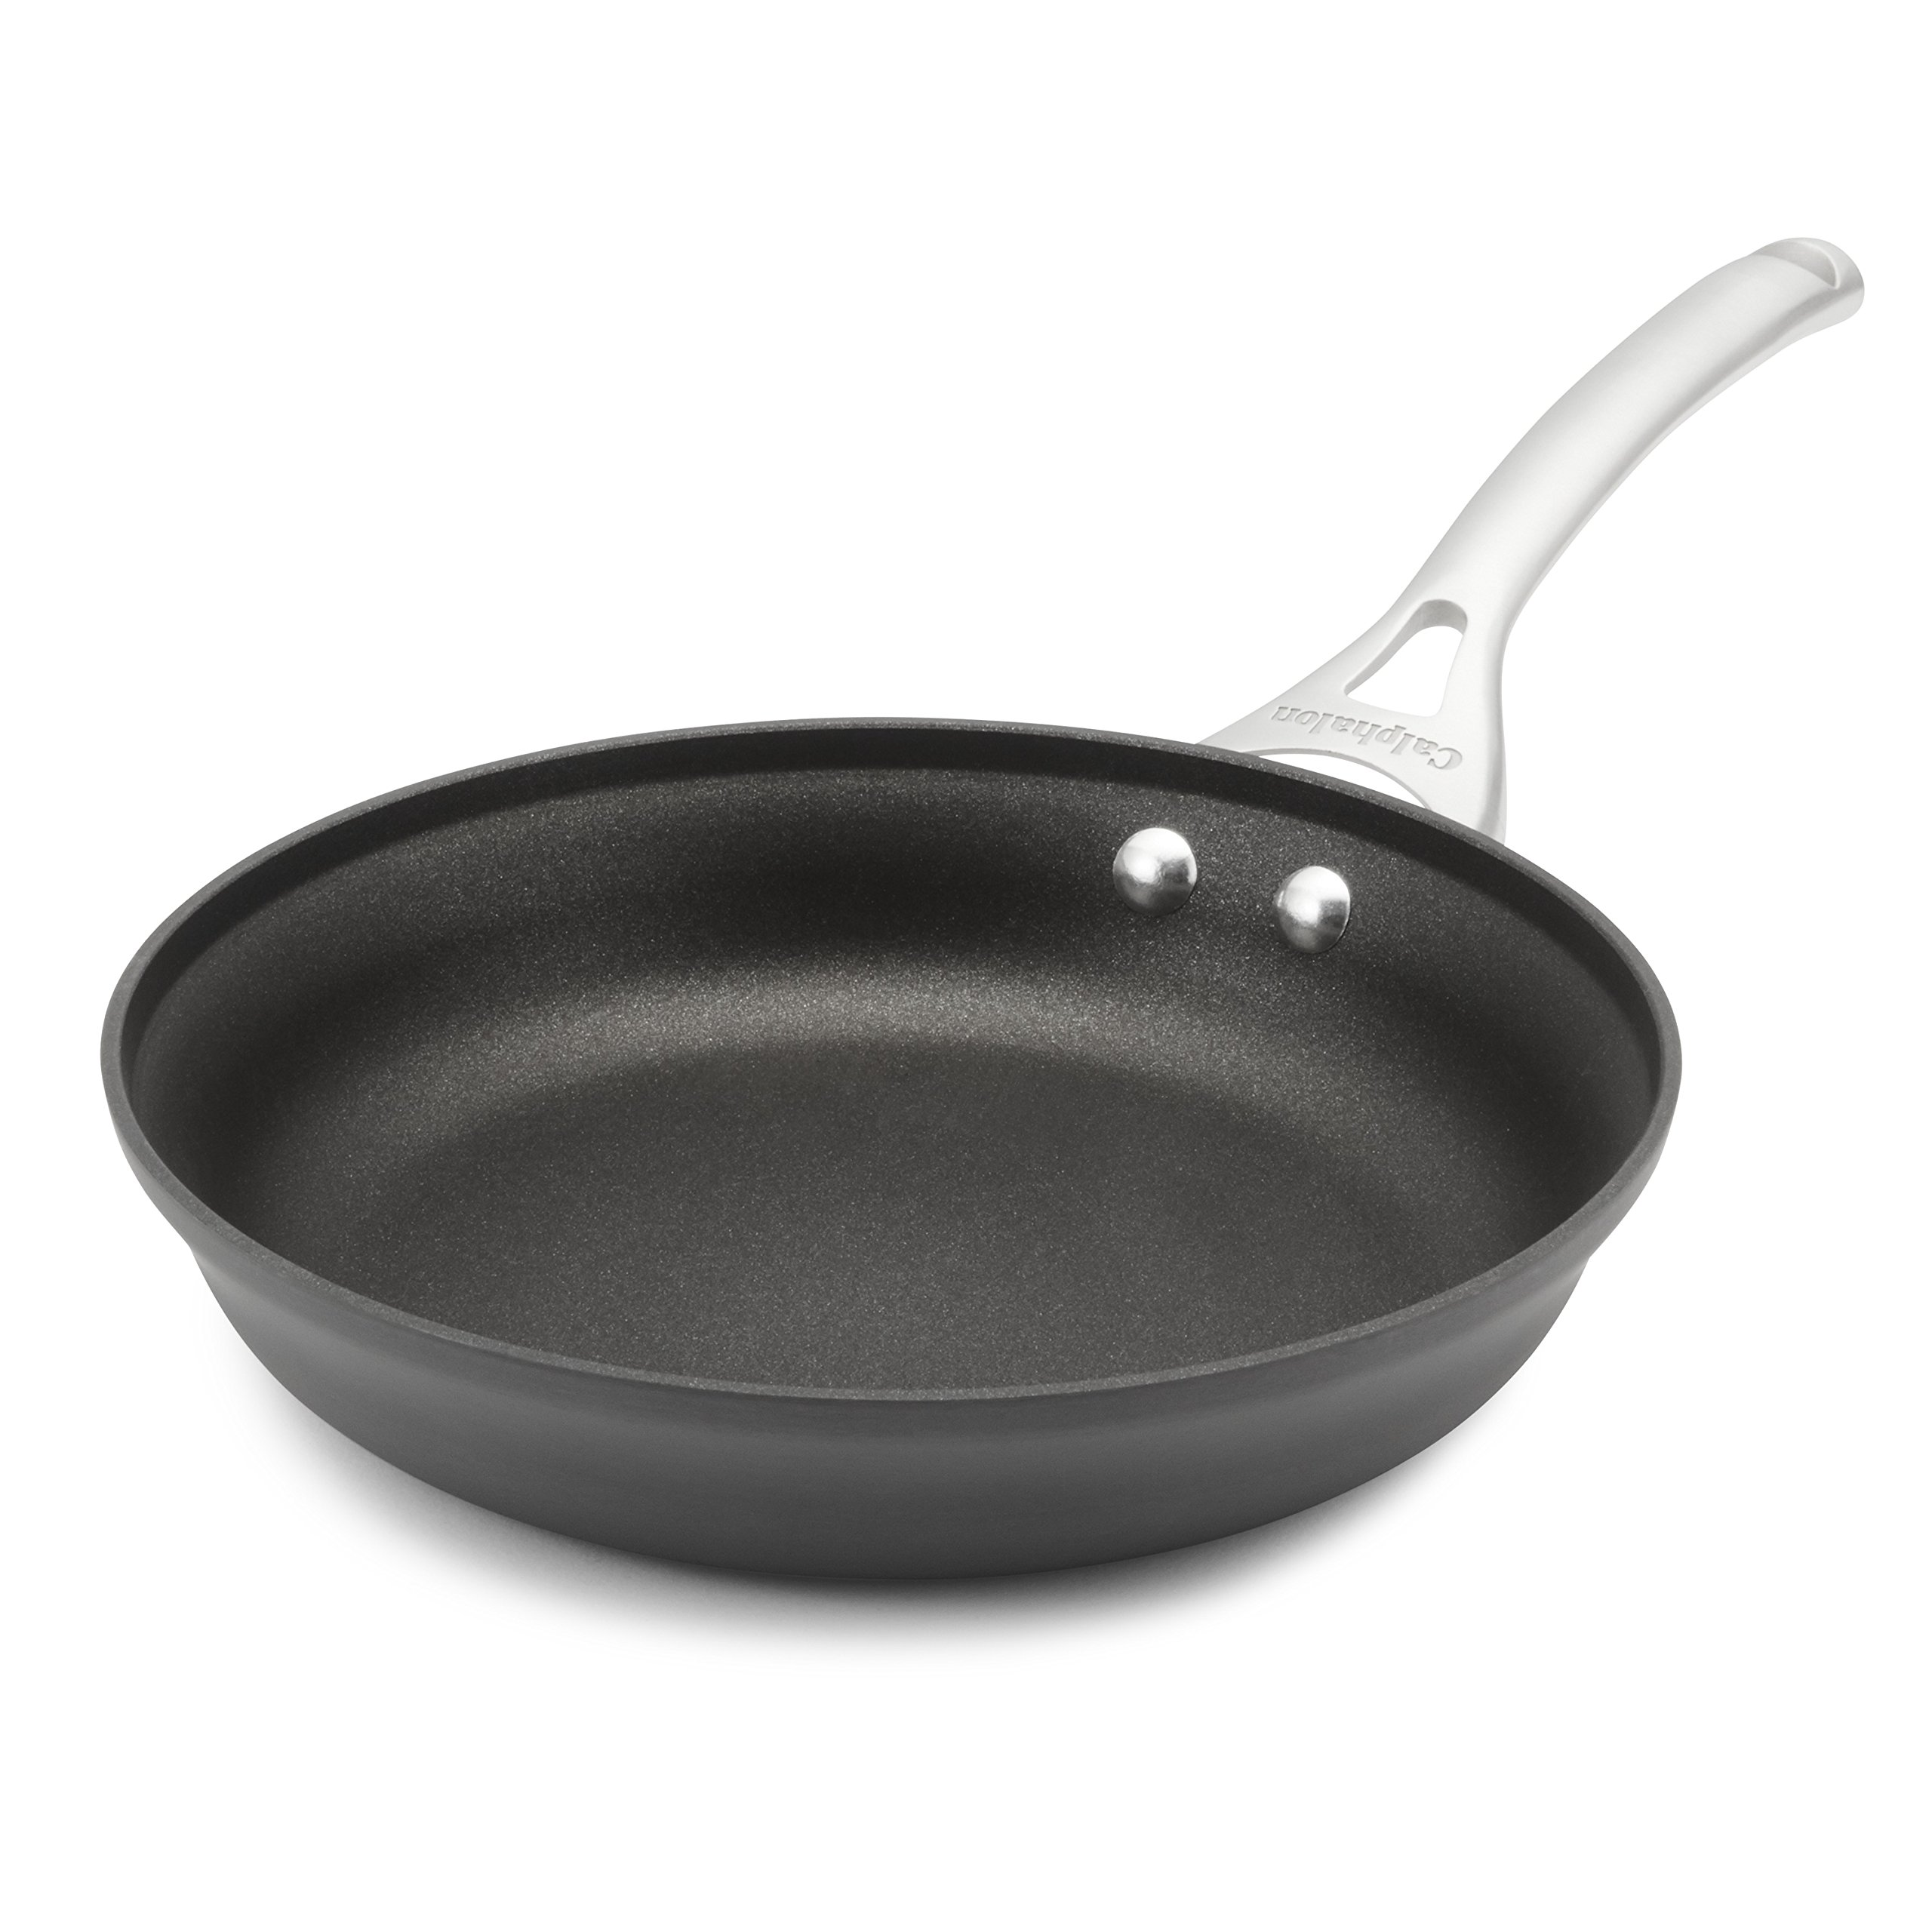 Calphalon Contemporary Hard-Anodized Aluminum Nonstick Cookware, Omelette Fry Pan, 10-inch, Black